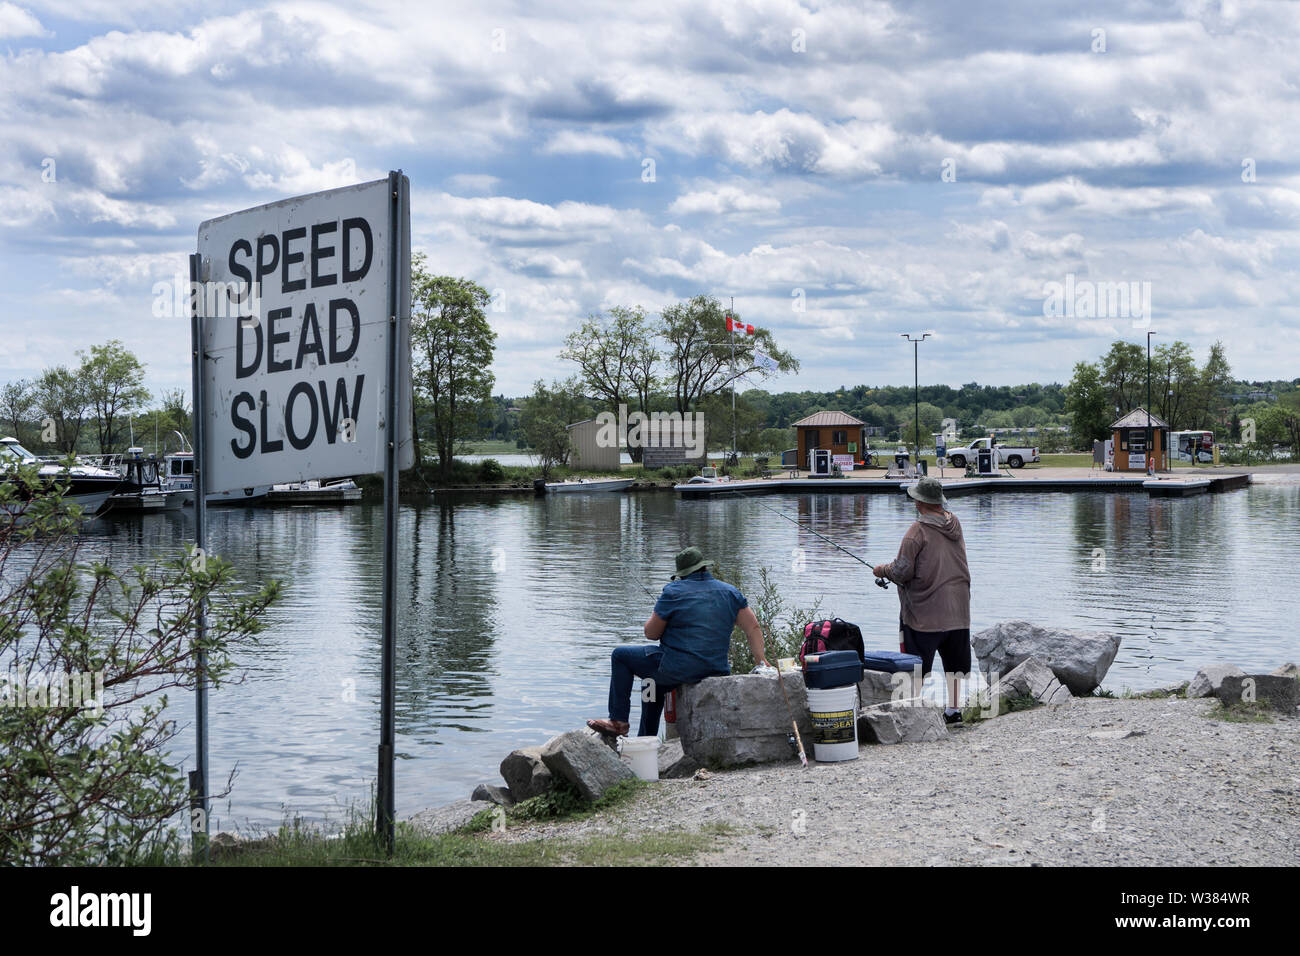 Canada Ontario Barrie at June 2019, Marina Kempenfelt Bay Yacht Club, Two fishermen try their luck - Stock Image